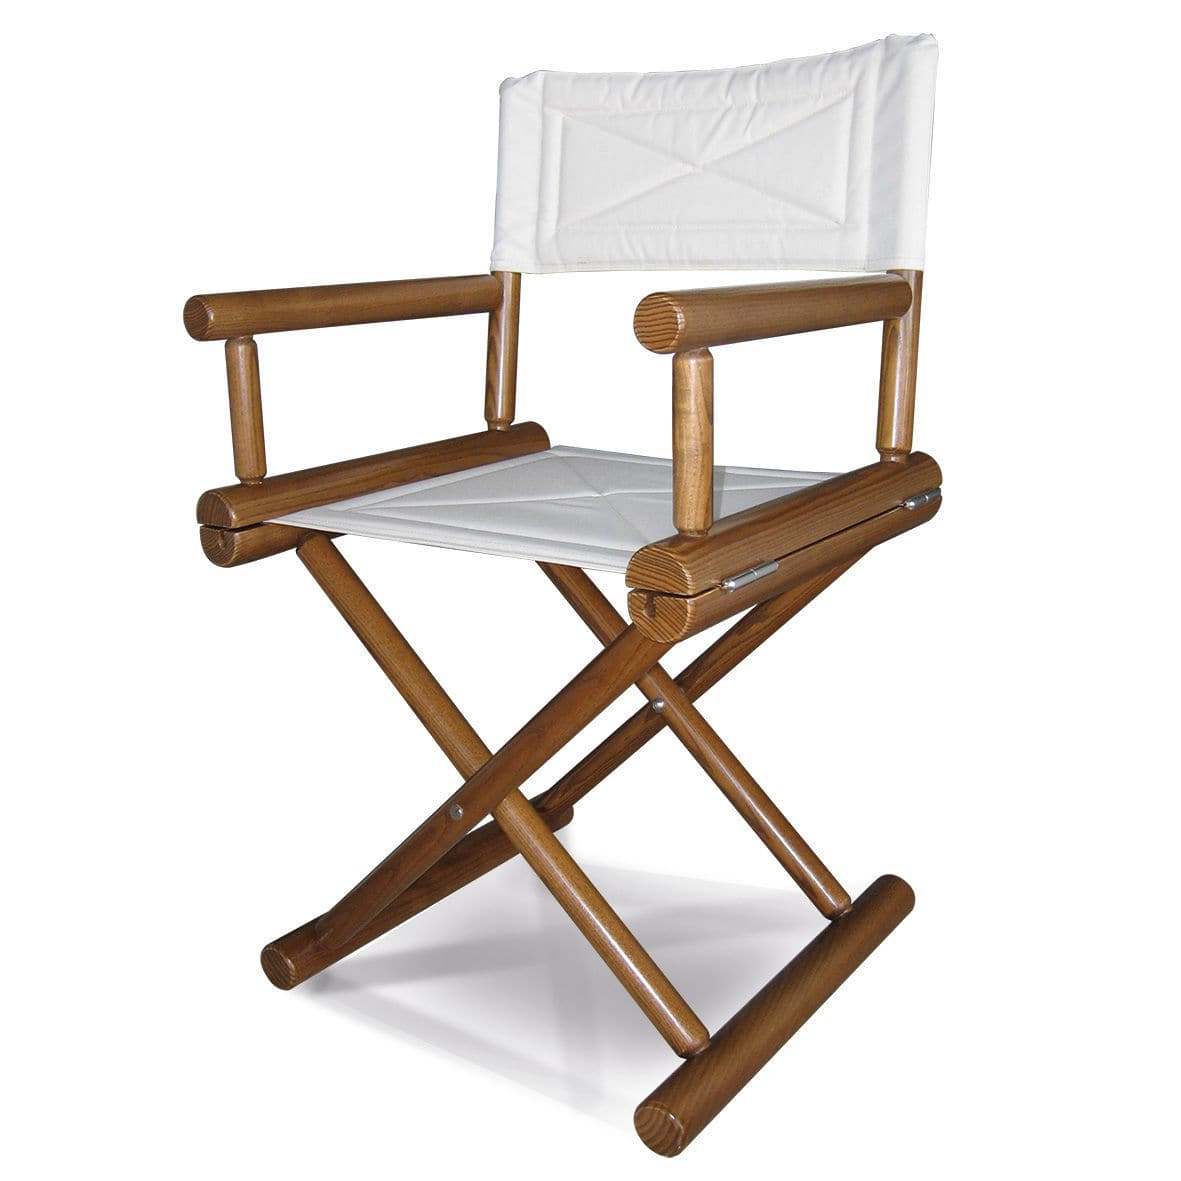 Folding Wooden Chairs Boat Director S Chair Folding Wooden Round 1002dct E Valdenassi